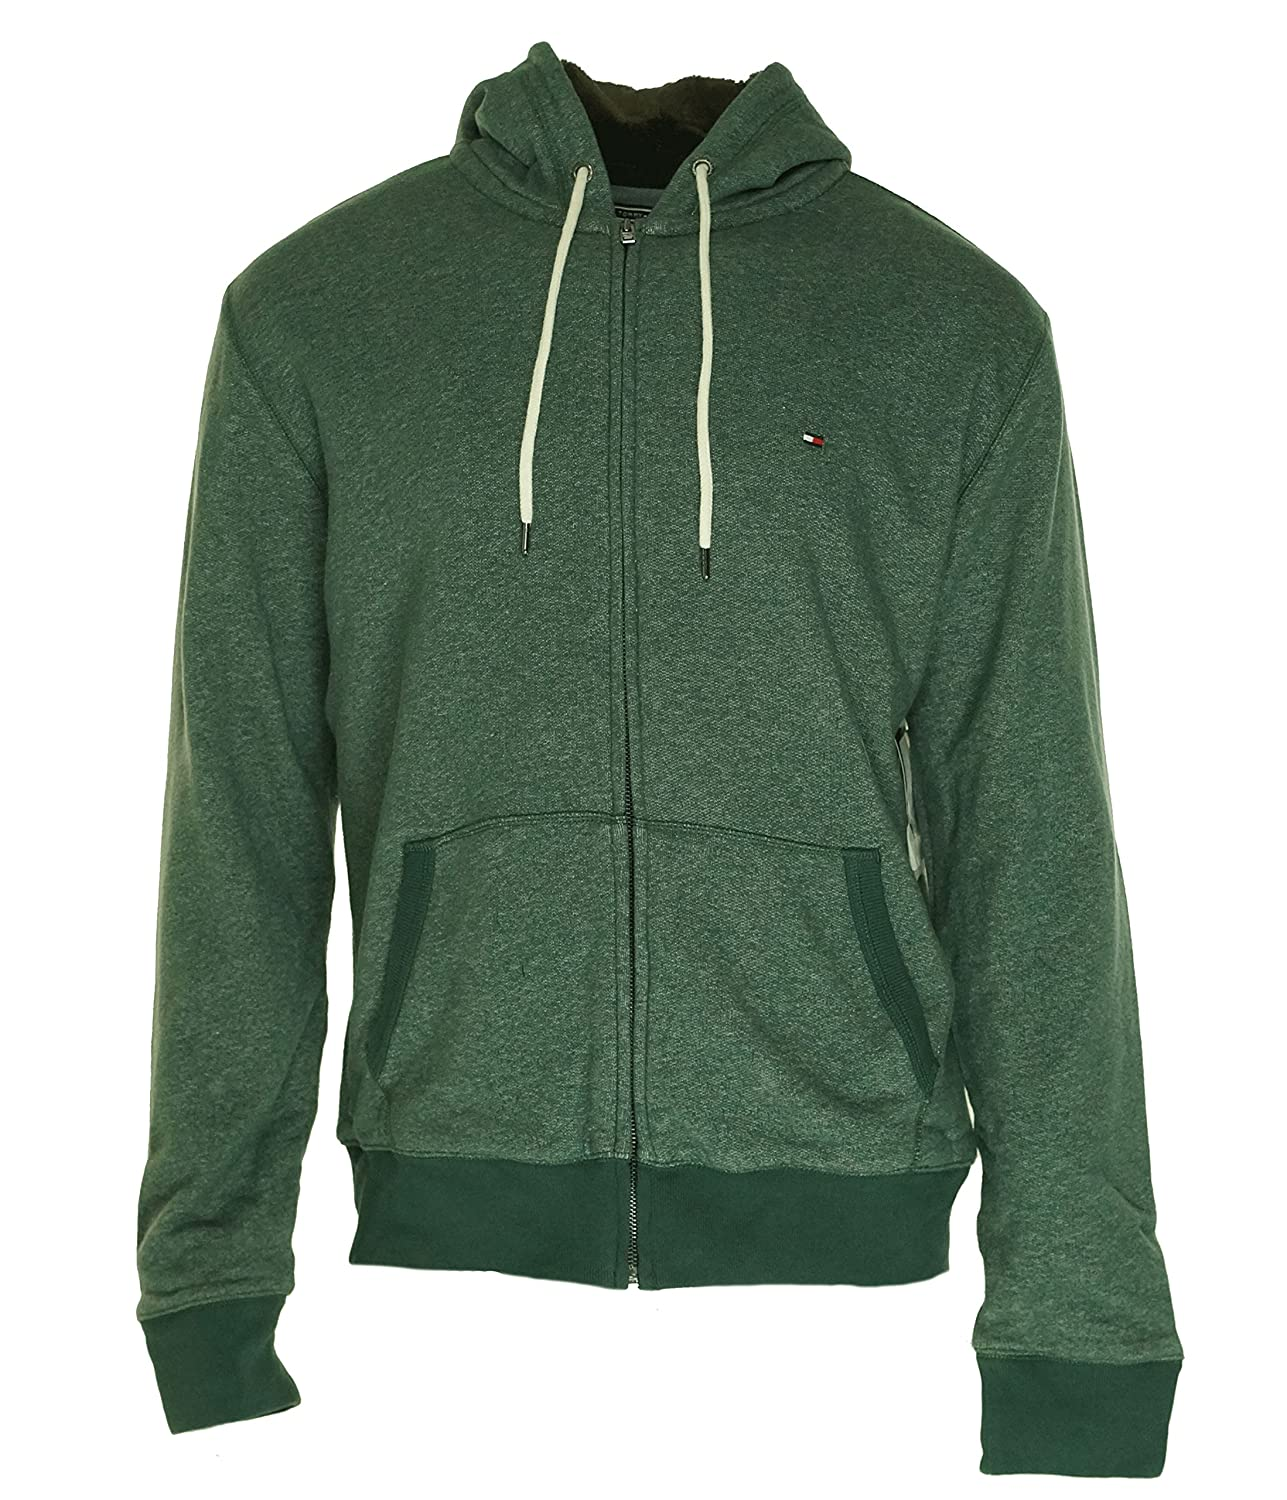 235ccd17d Tommy Hilfiger Mens Fur Lined Full Zip Hooded Sweatshirt ...